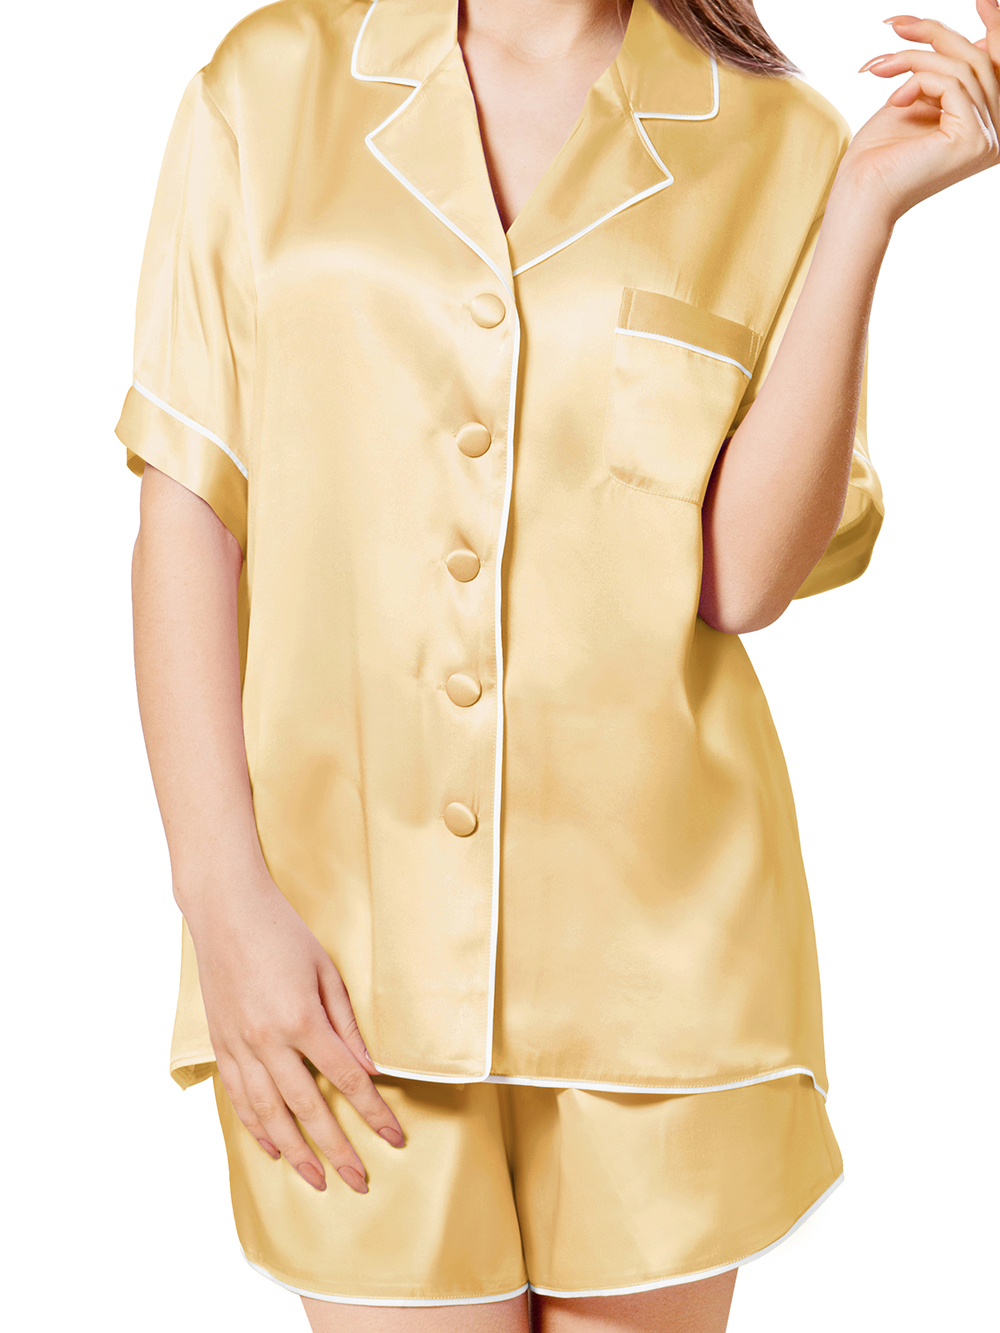 Gold Pure Silk Pajamas For Women Top Quality